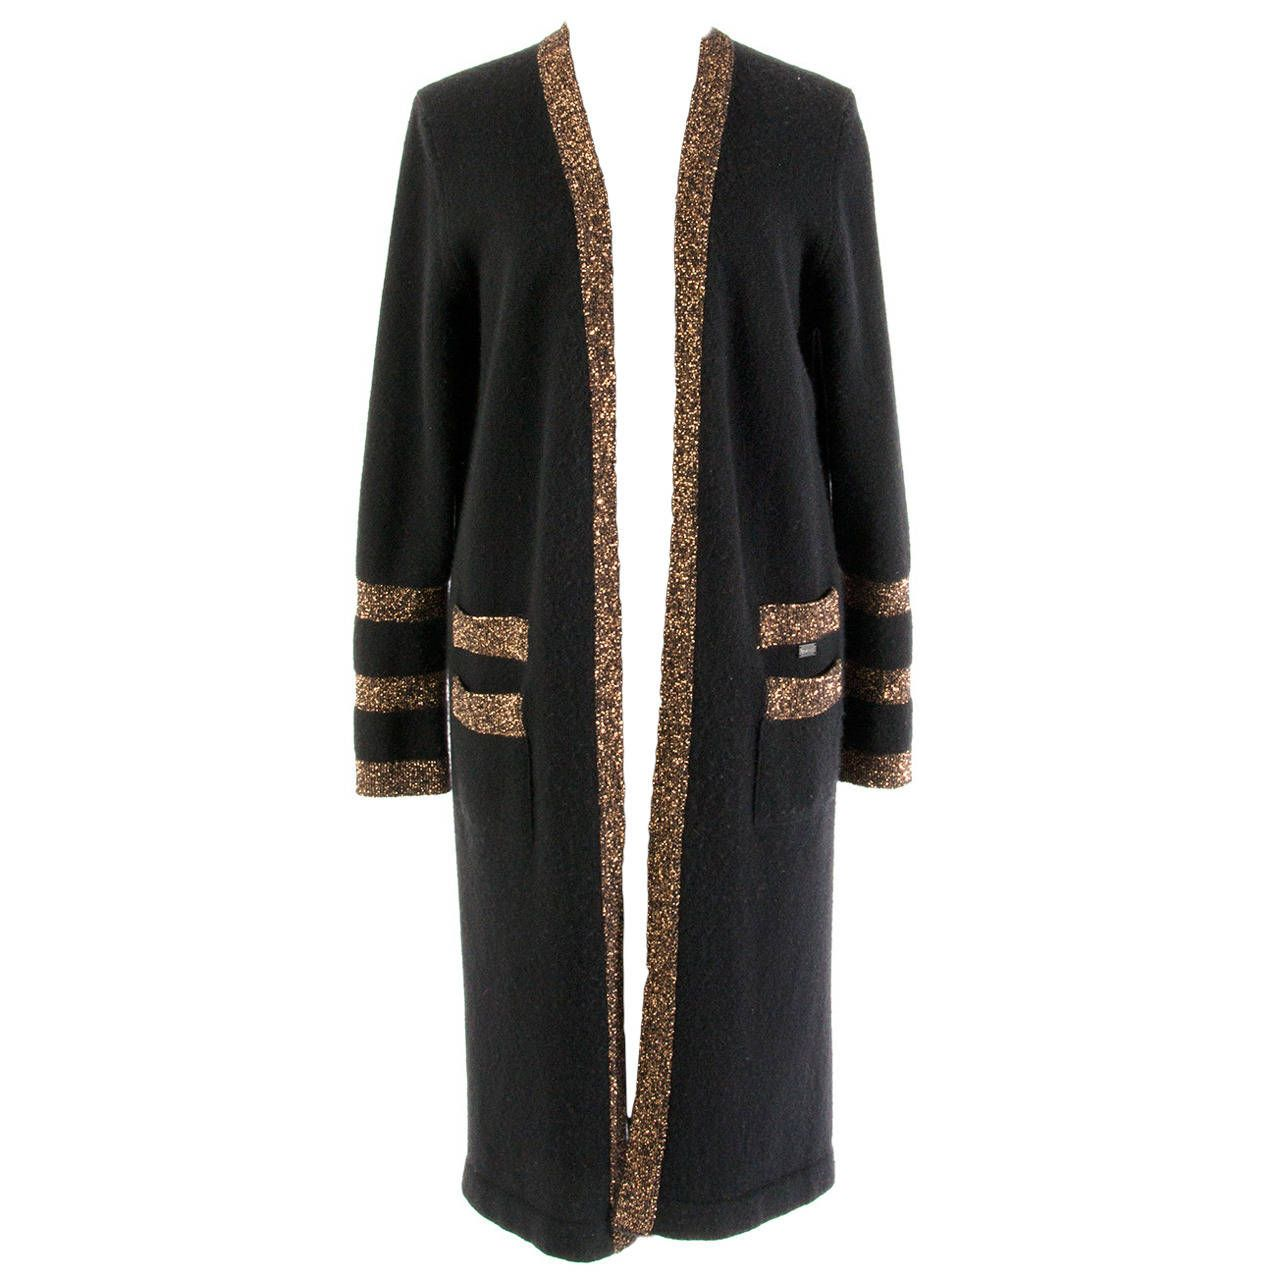 Chanel Black And Gold Cashmere Cardigan | From a collection of ...